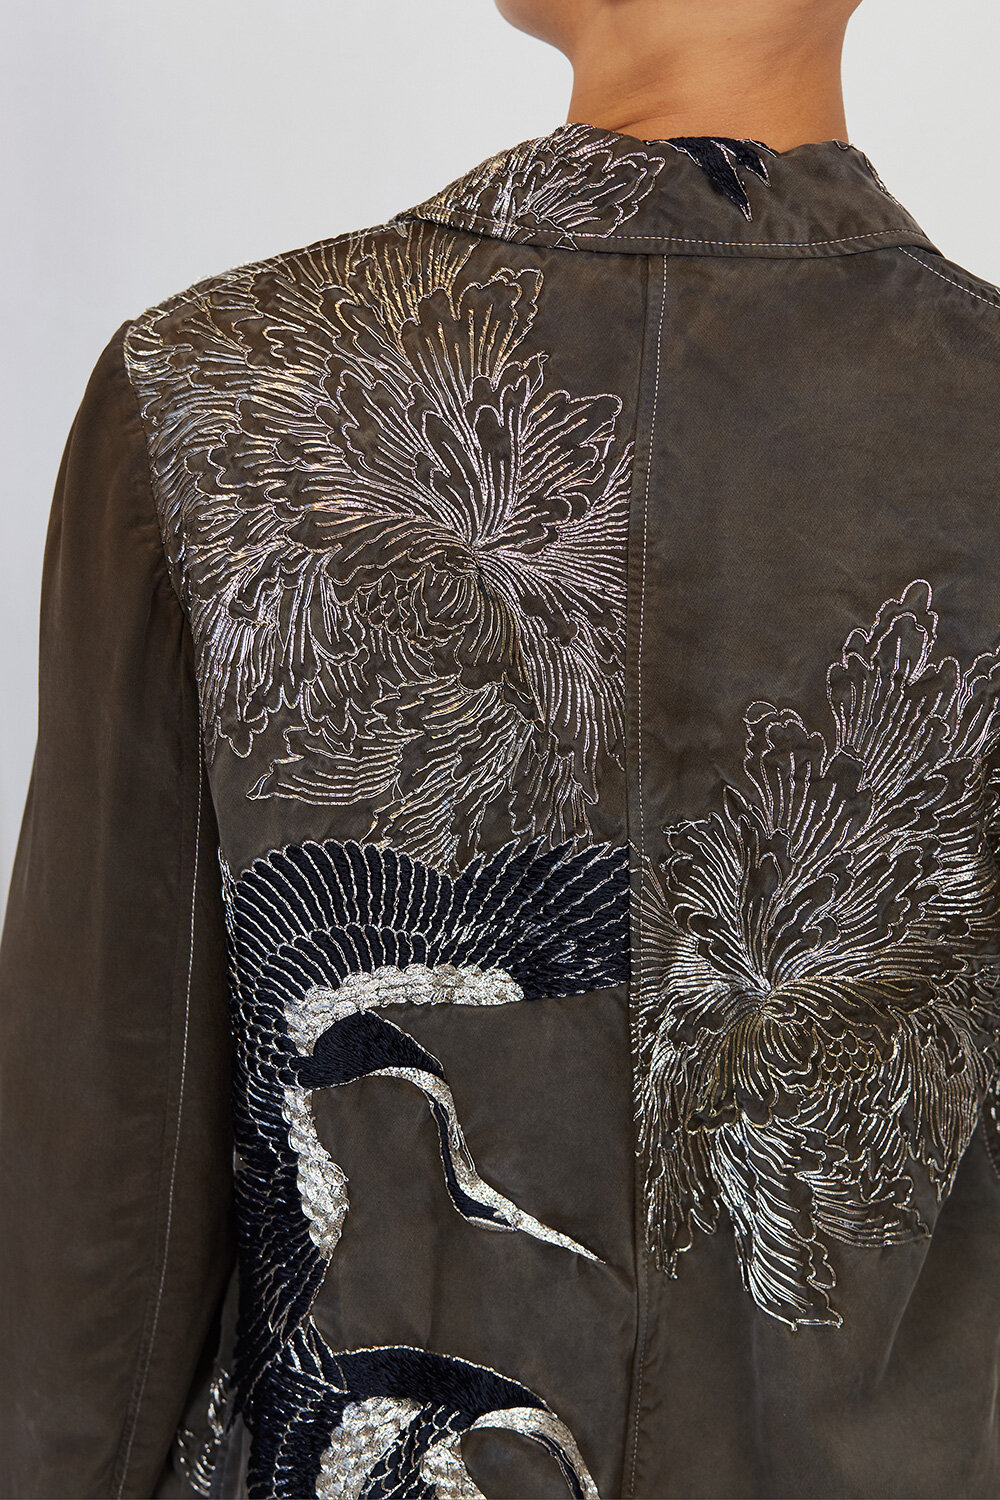 By Walid Womenswear Embroidered 19th Century Coat SS20